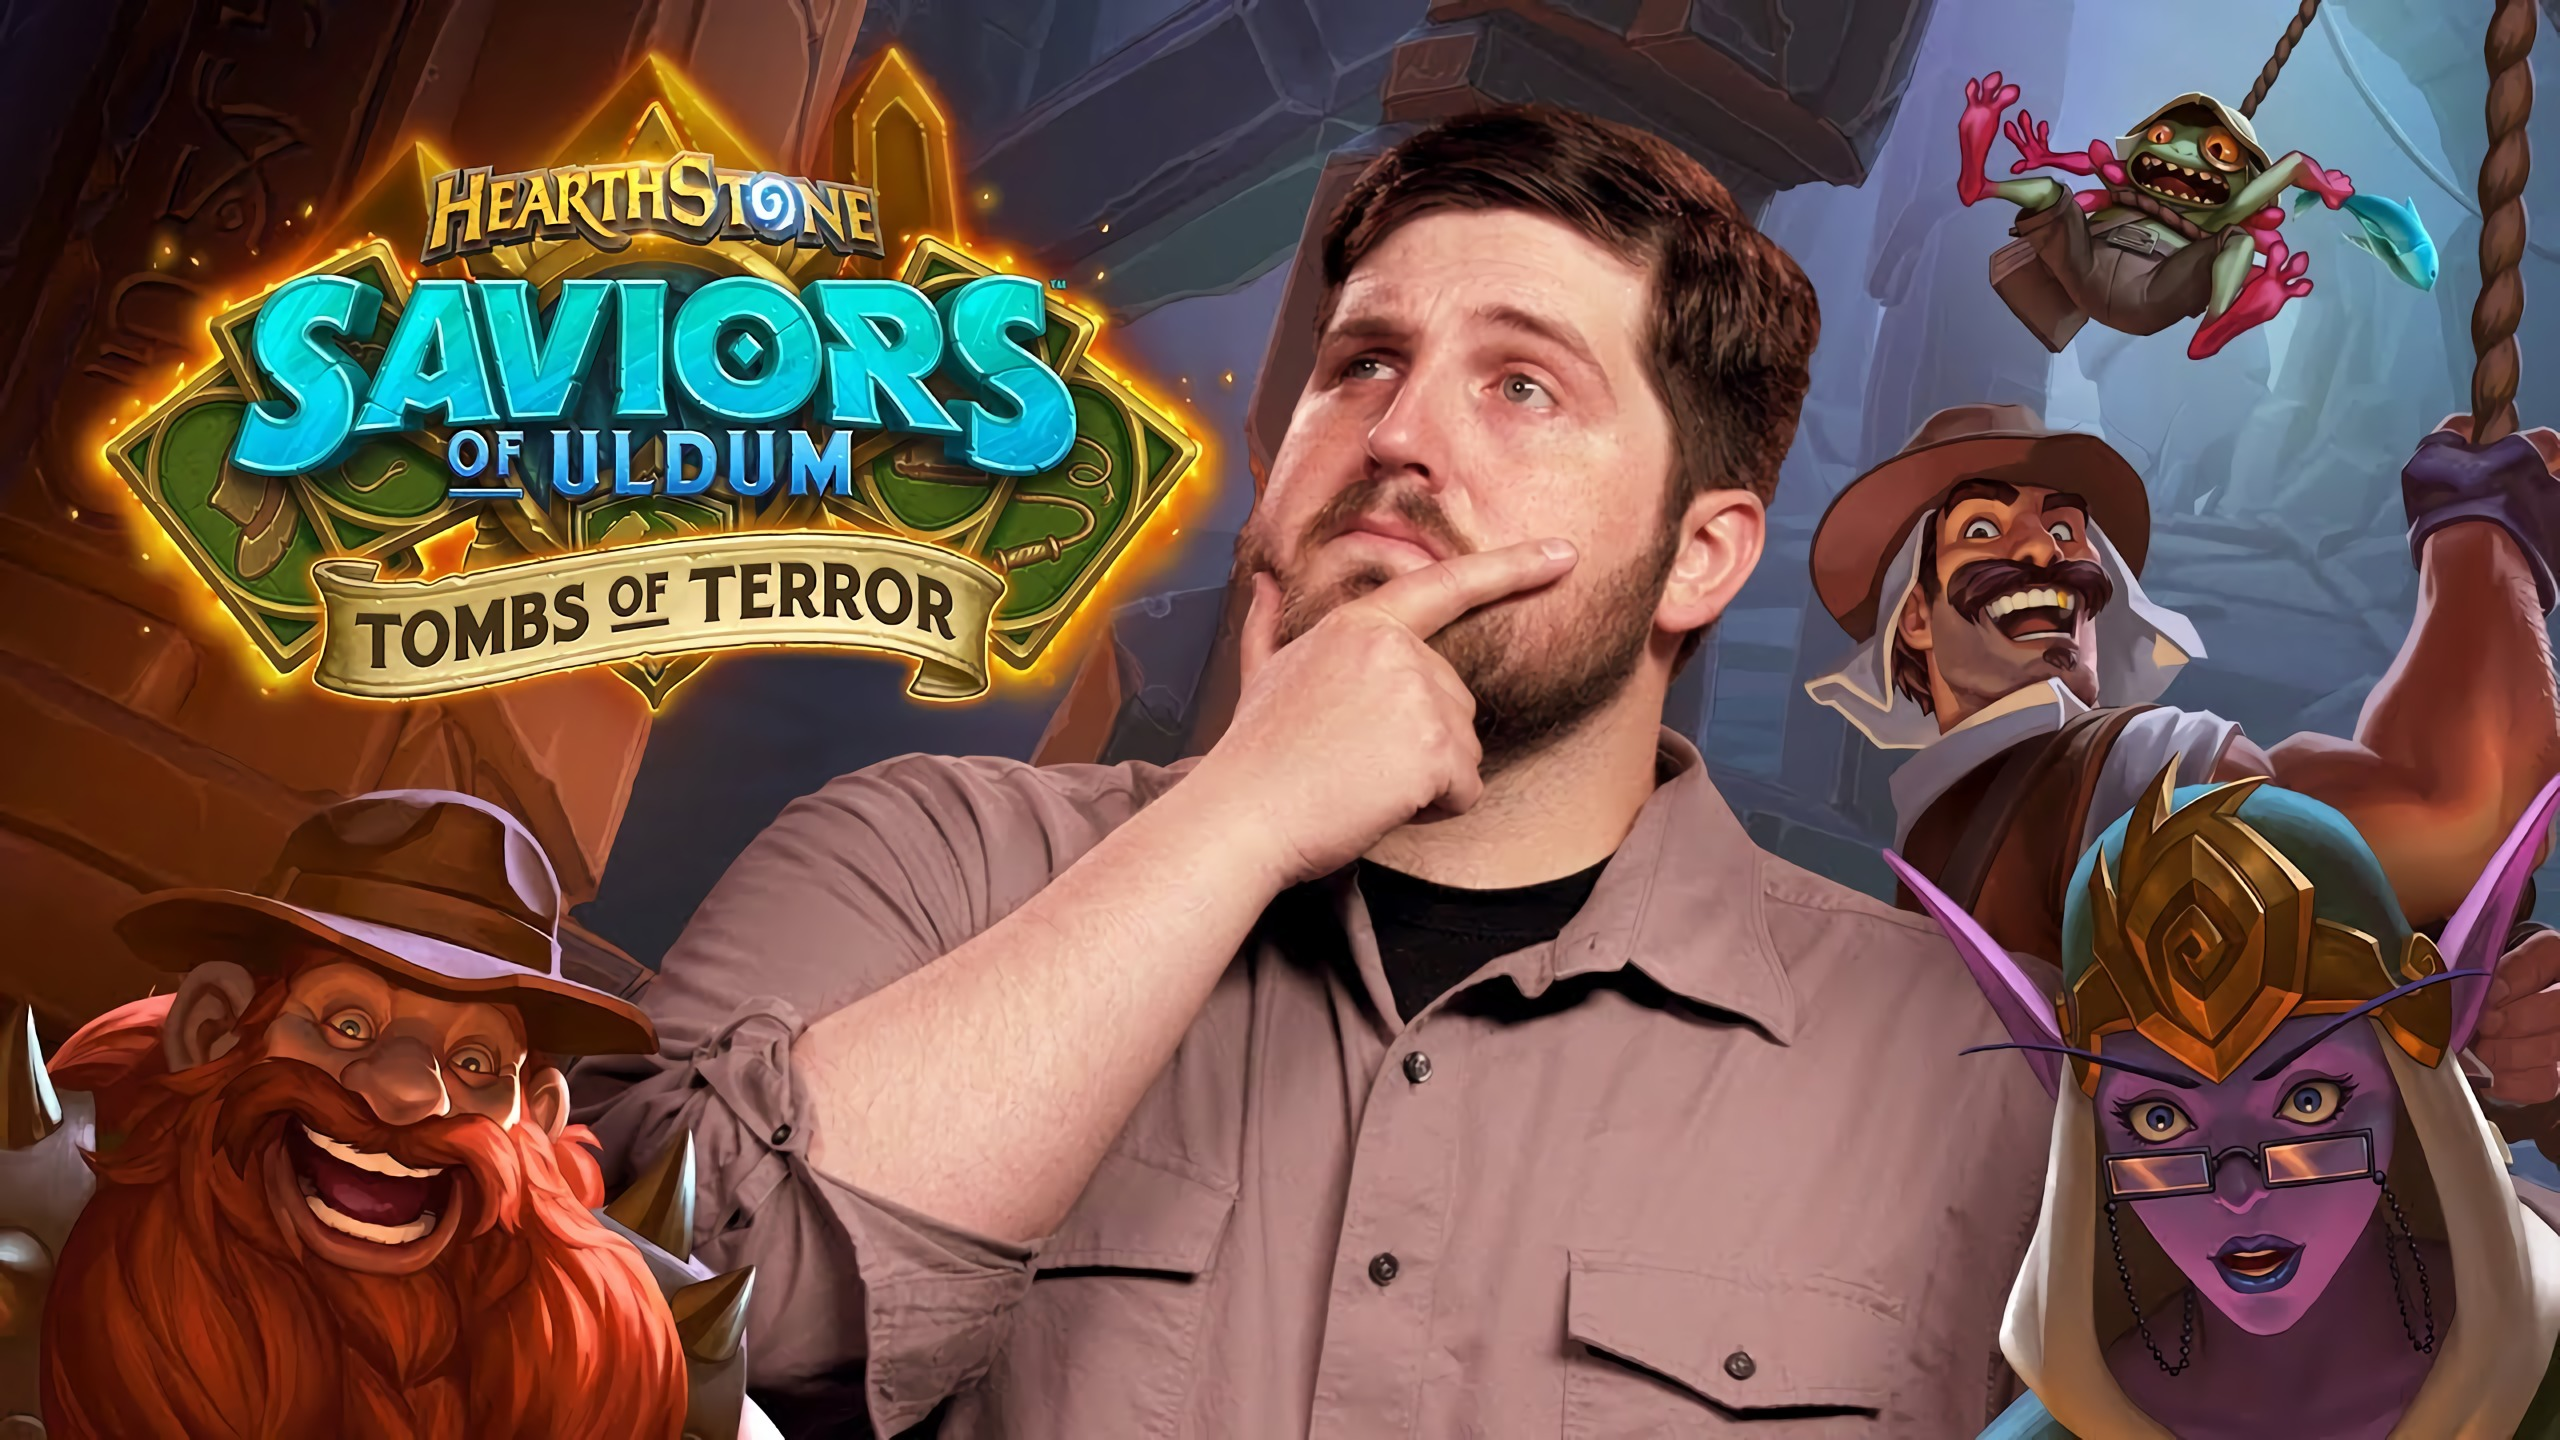 Hearthstone: Saviors of Uldum: Newest solo adventure, Tombs of Terror now available for pre-purchase